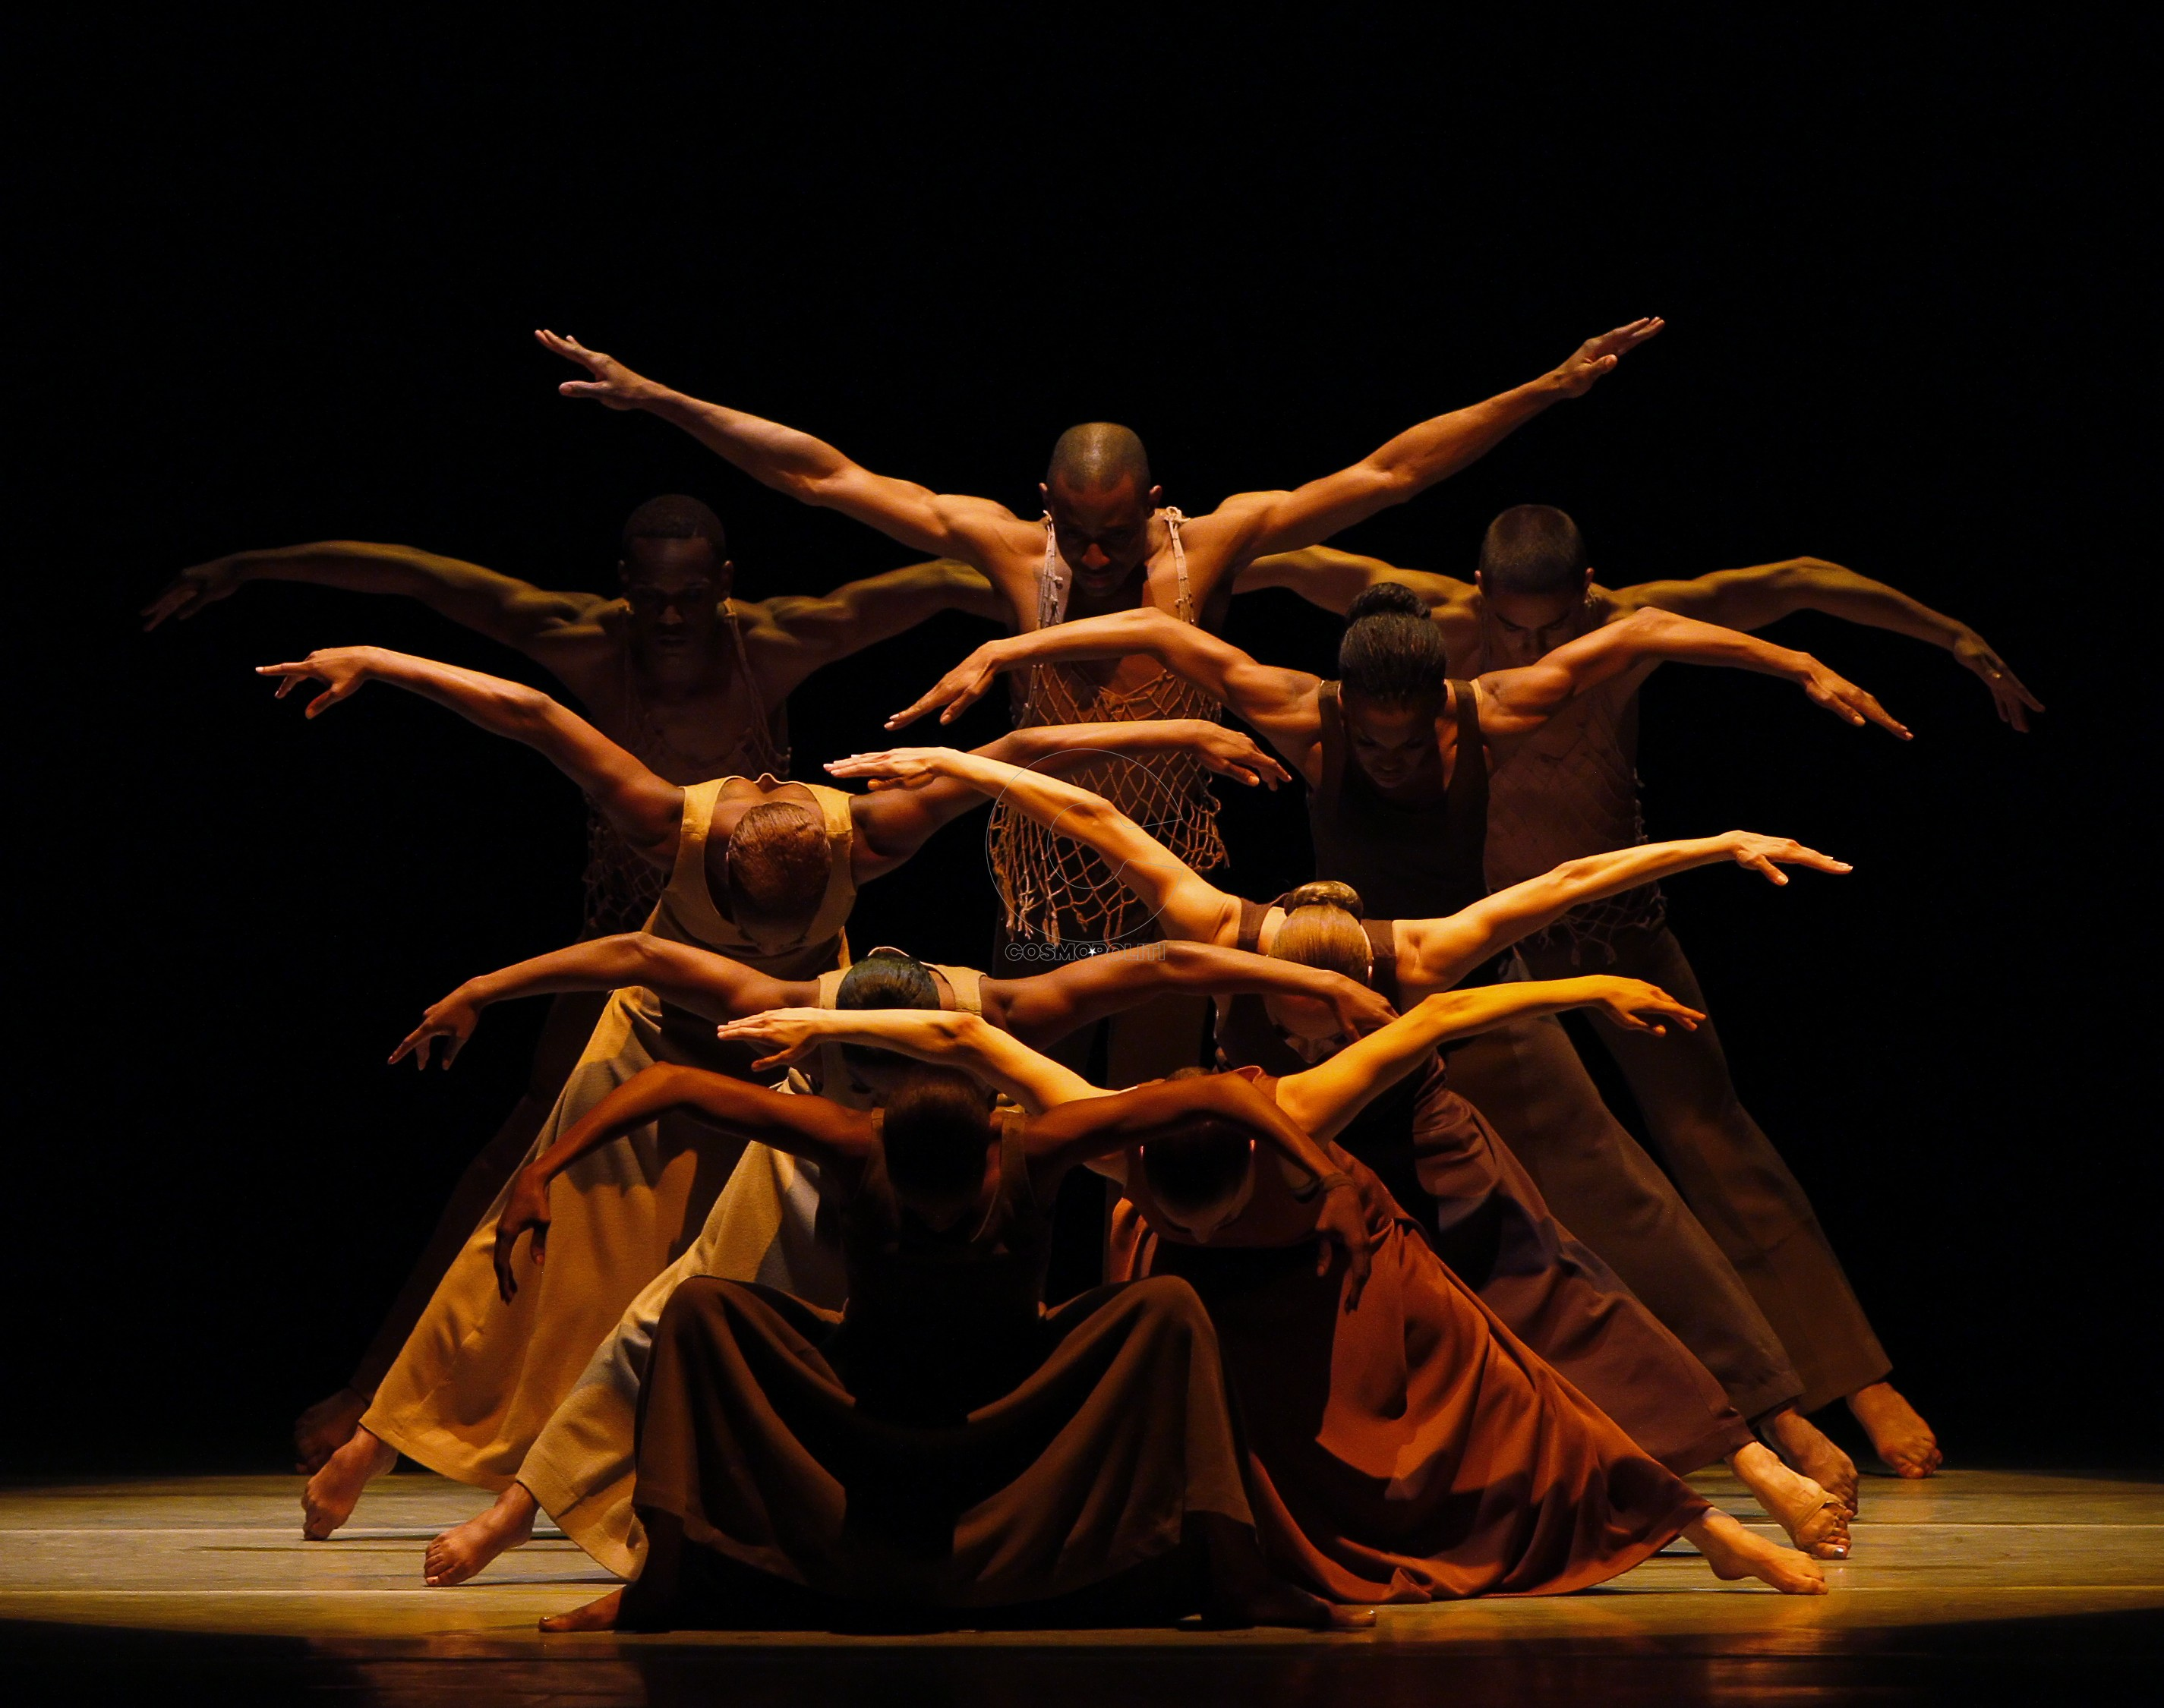 Revelations: Choreography by Alvin Ailey Alvin Ailey American dance Theater Credit photo: ©Paul Kolnik paul@paulkolnik.com nyc  212-362-7778